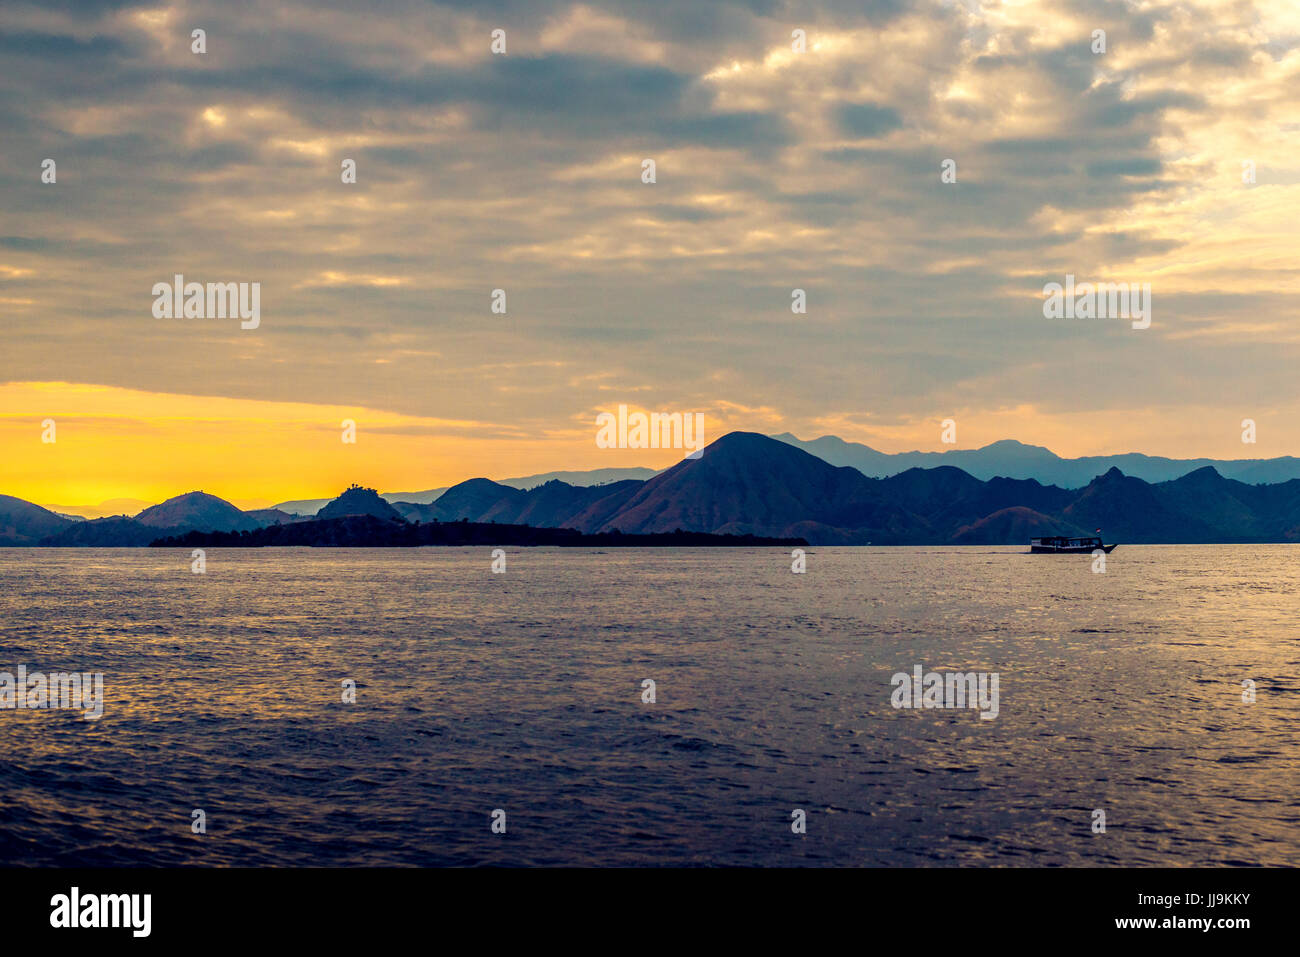 Labuan Bajo Komodo National Park Indonesia Sunset - Stock Image